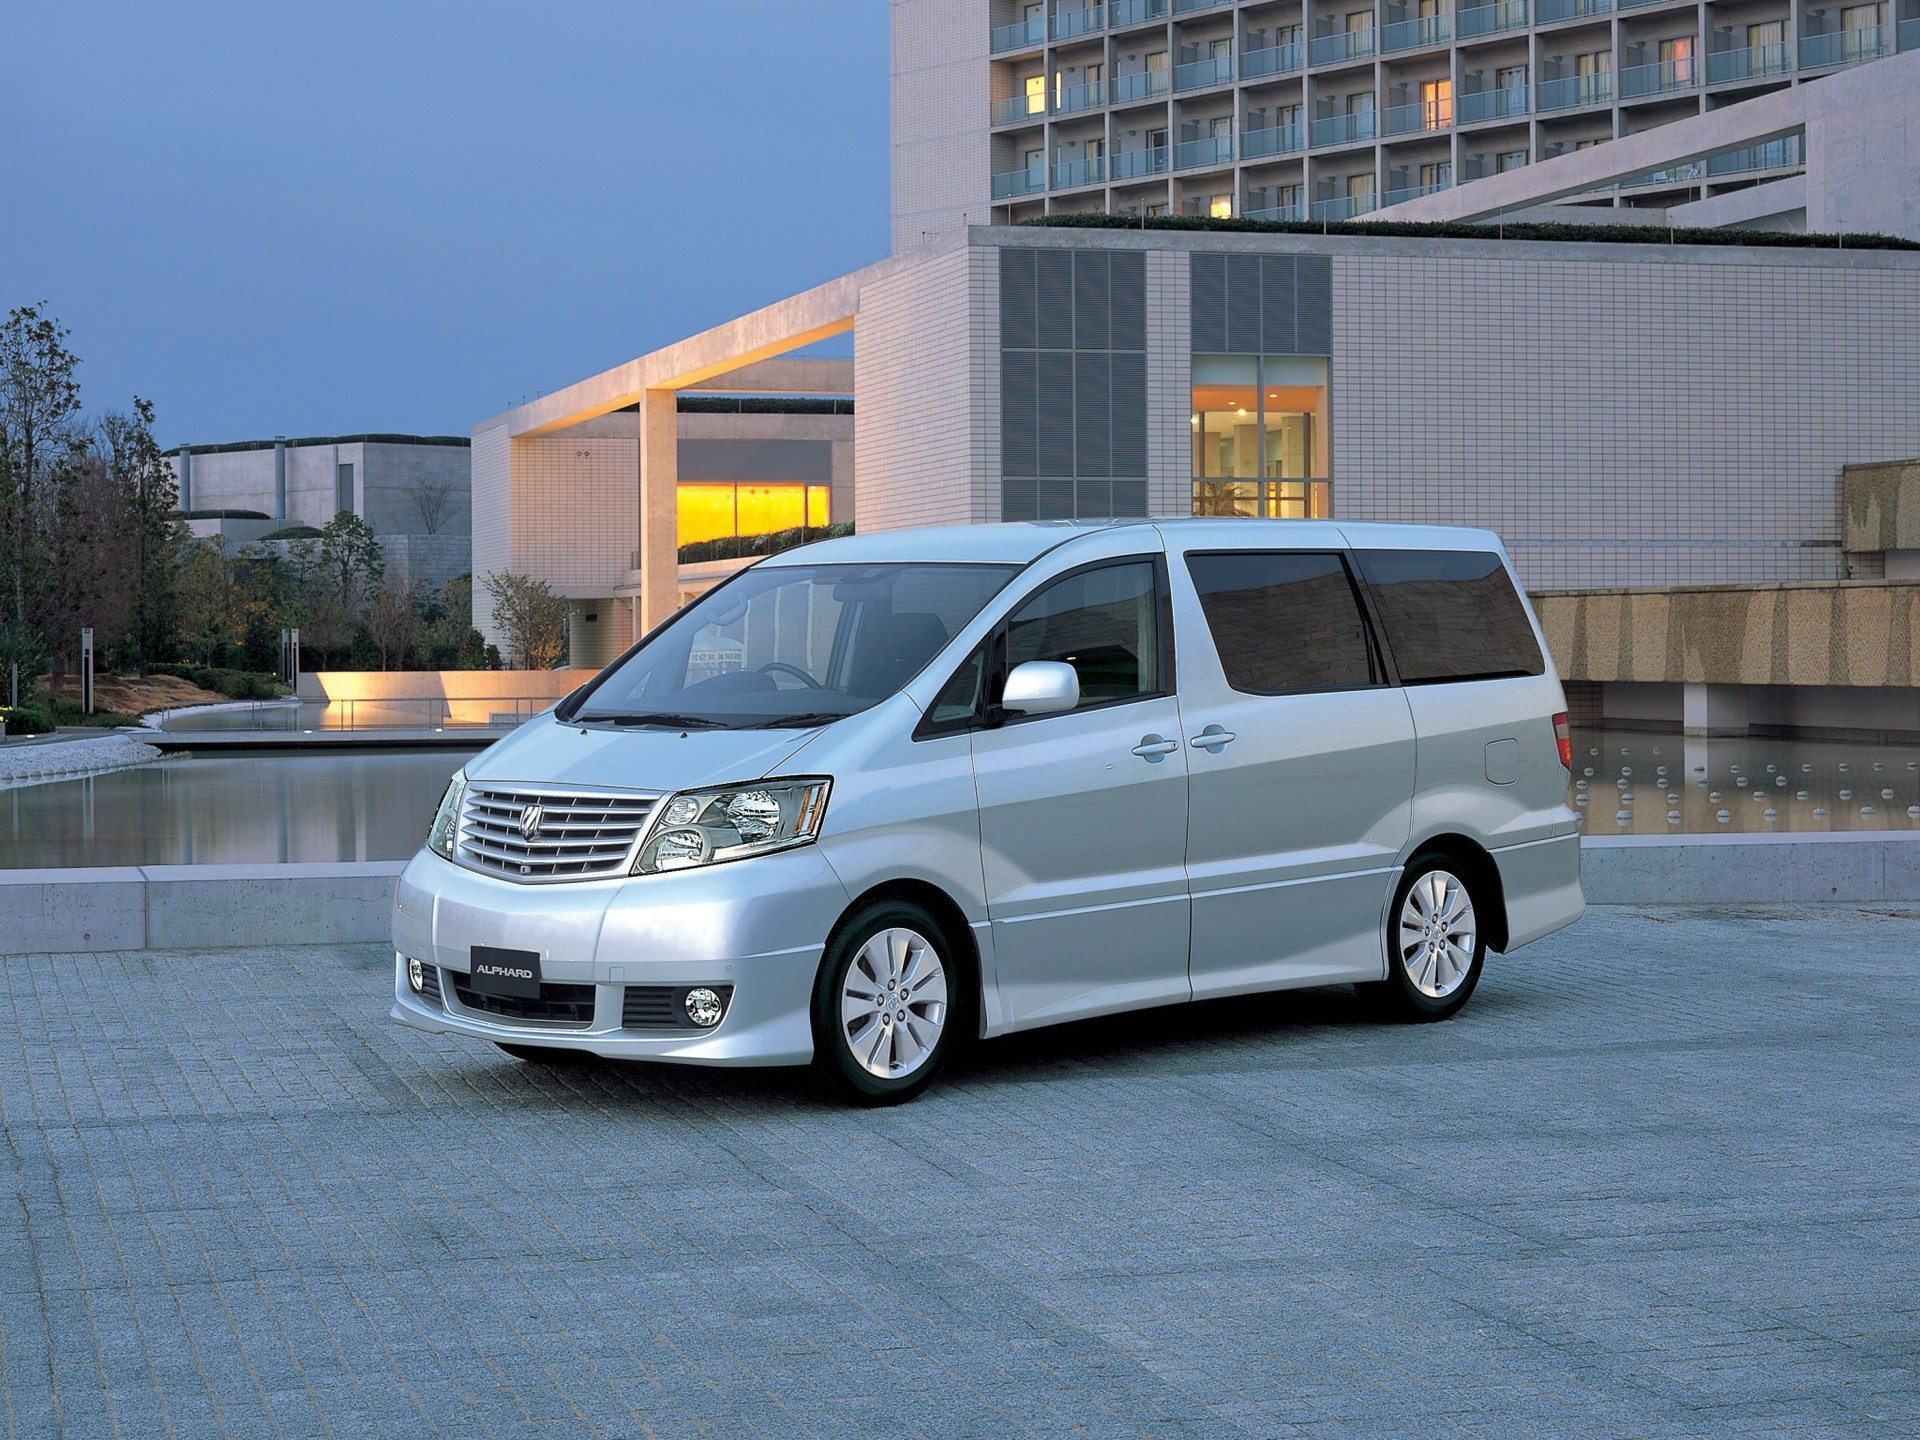 2002 toyota alphard fuel consumption. Black Bedroom Furniture Sets. Home Design Ideas